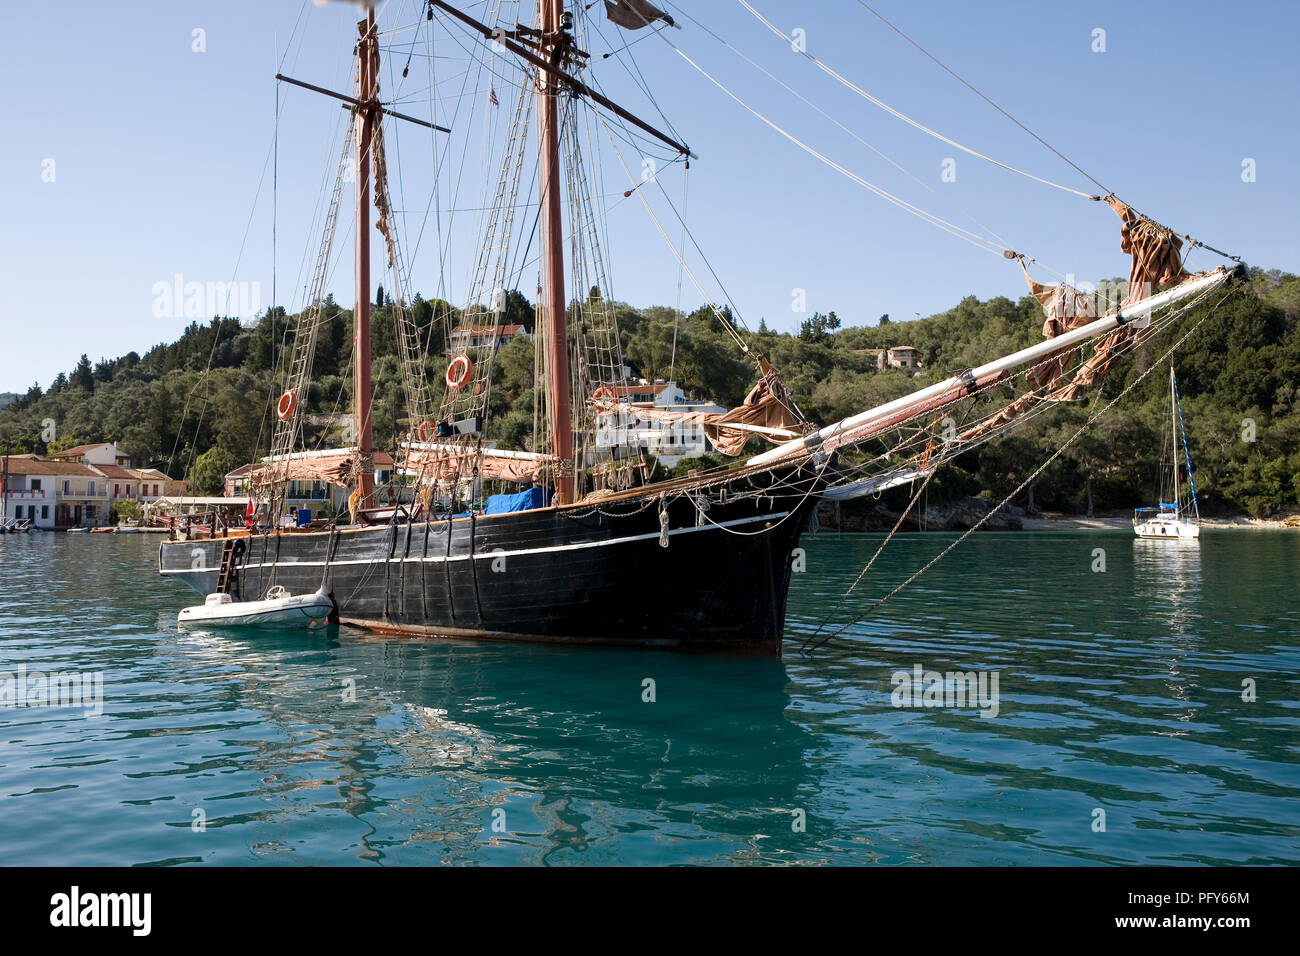 The harbour at Lakka, Paxos, Greece in early morning, with the topsail schooner Rhea at anchor - Stock Image